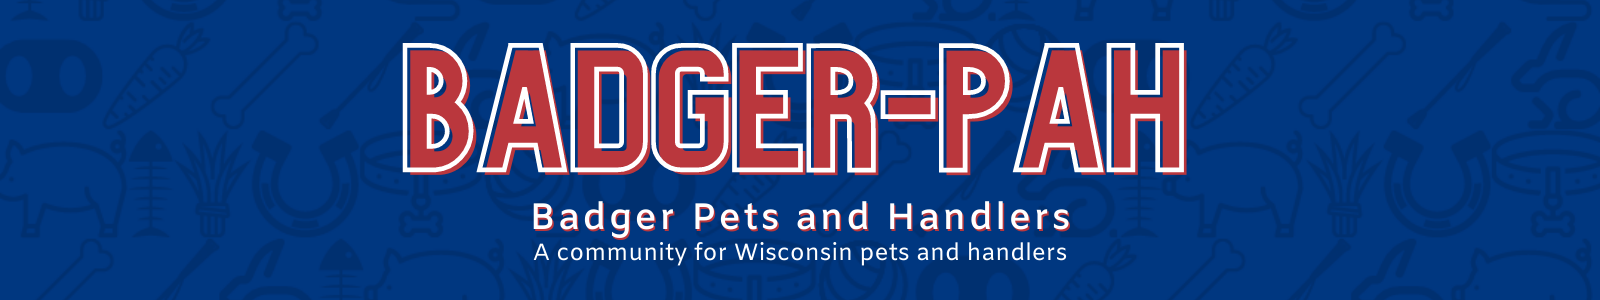 Badger Pets and Handlers